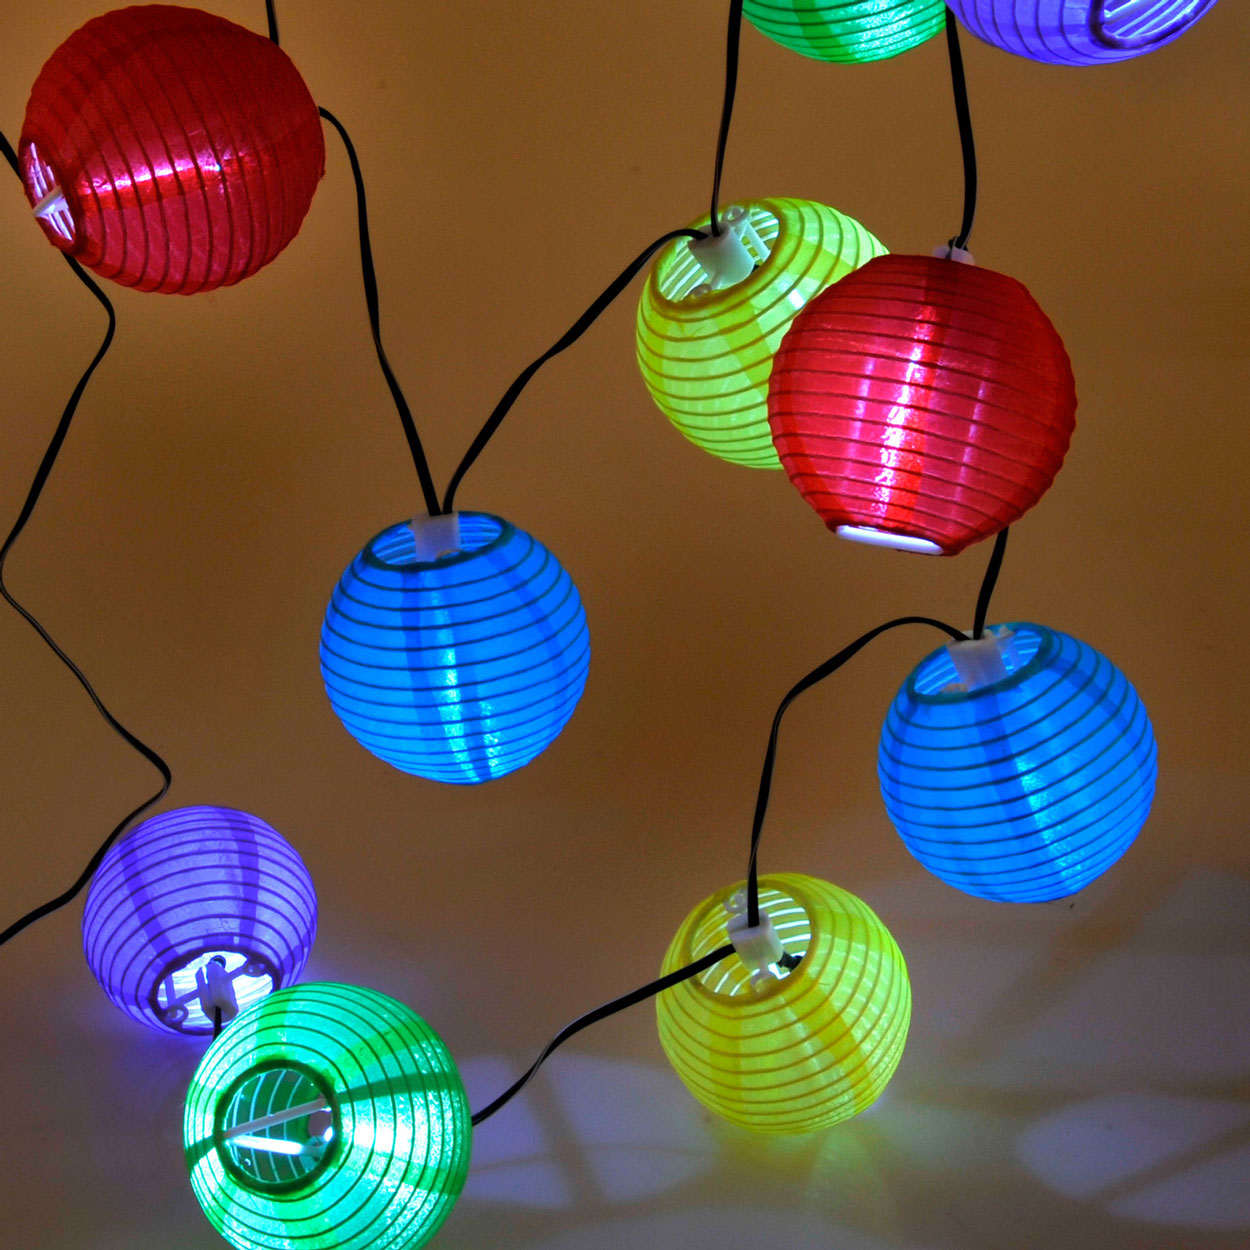 Awesome Lampion Verlichting Snoer Images - Trend Ideas 2018 ...